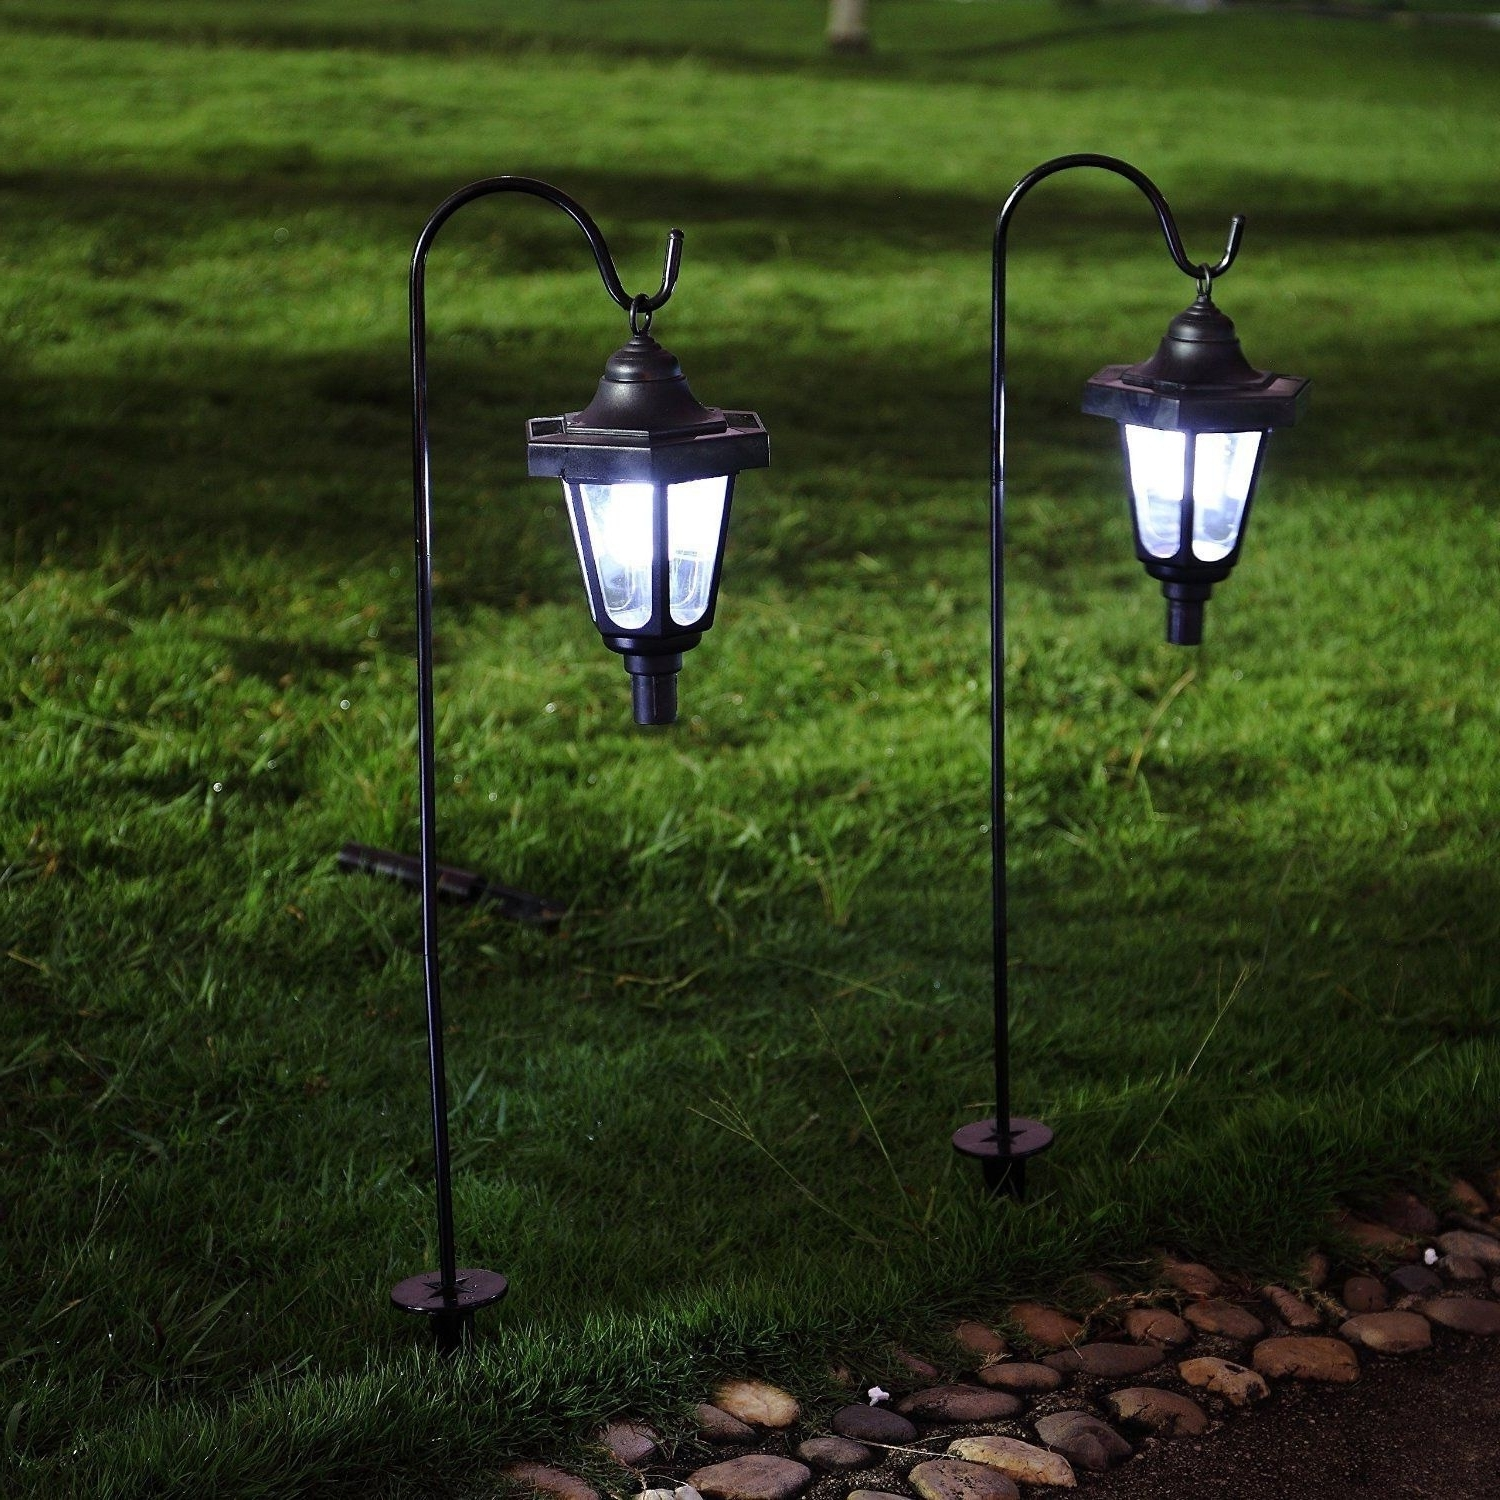 30 Best Of Solar Hanging Lanterns Lights Outdoor Regarding Popular Elegant Outdoor Lanterns (View 2 of 20)